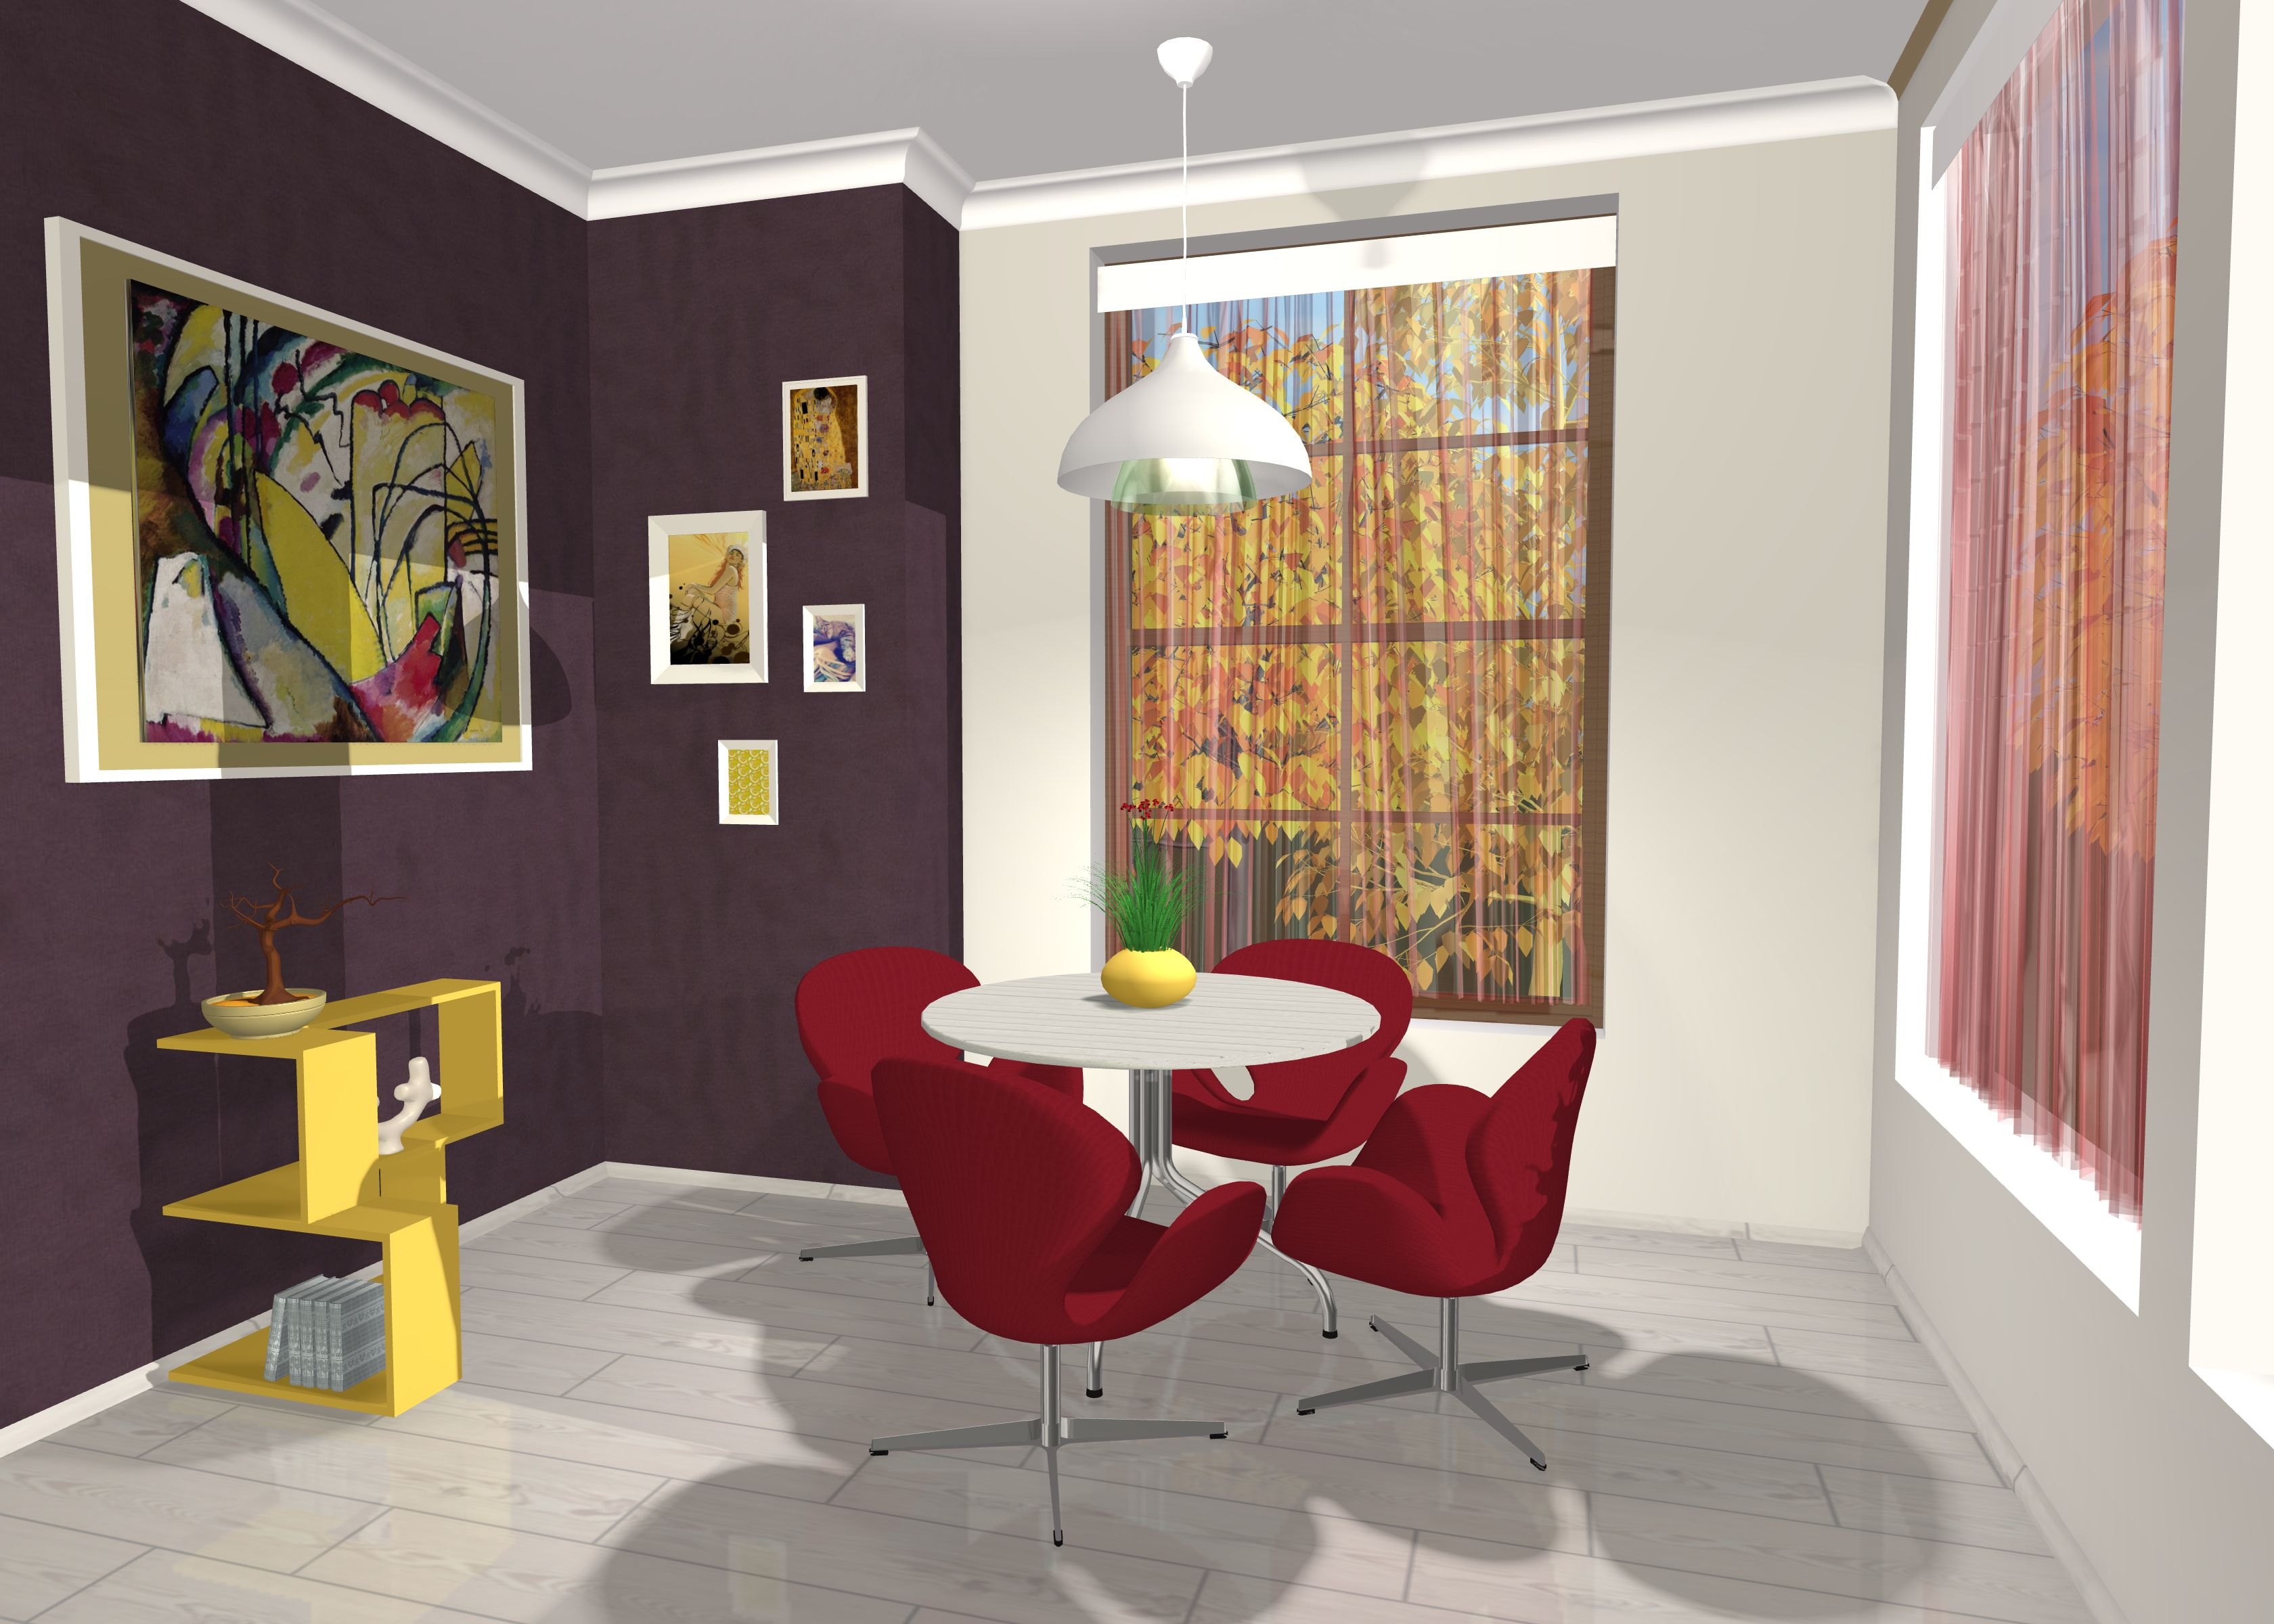 Crate The Homeofyourdreams In Livehome 3d Dreamhome